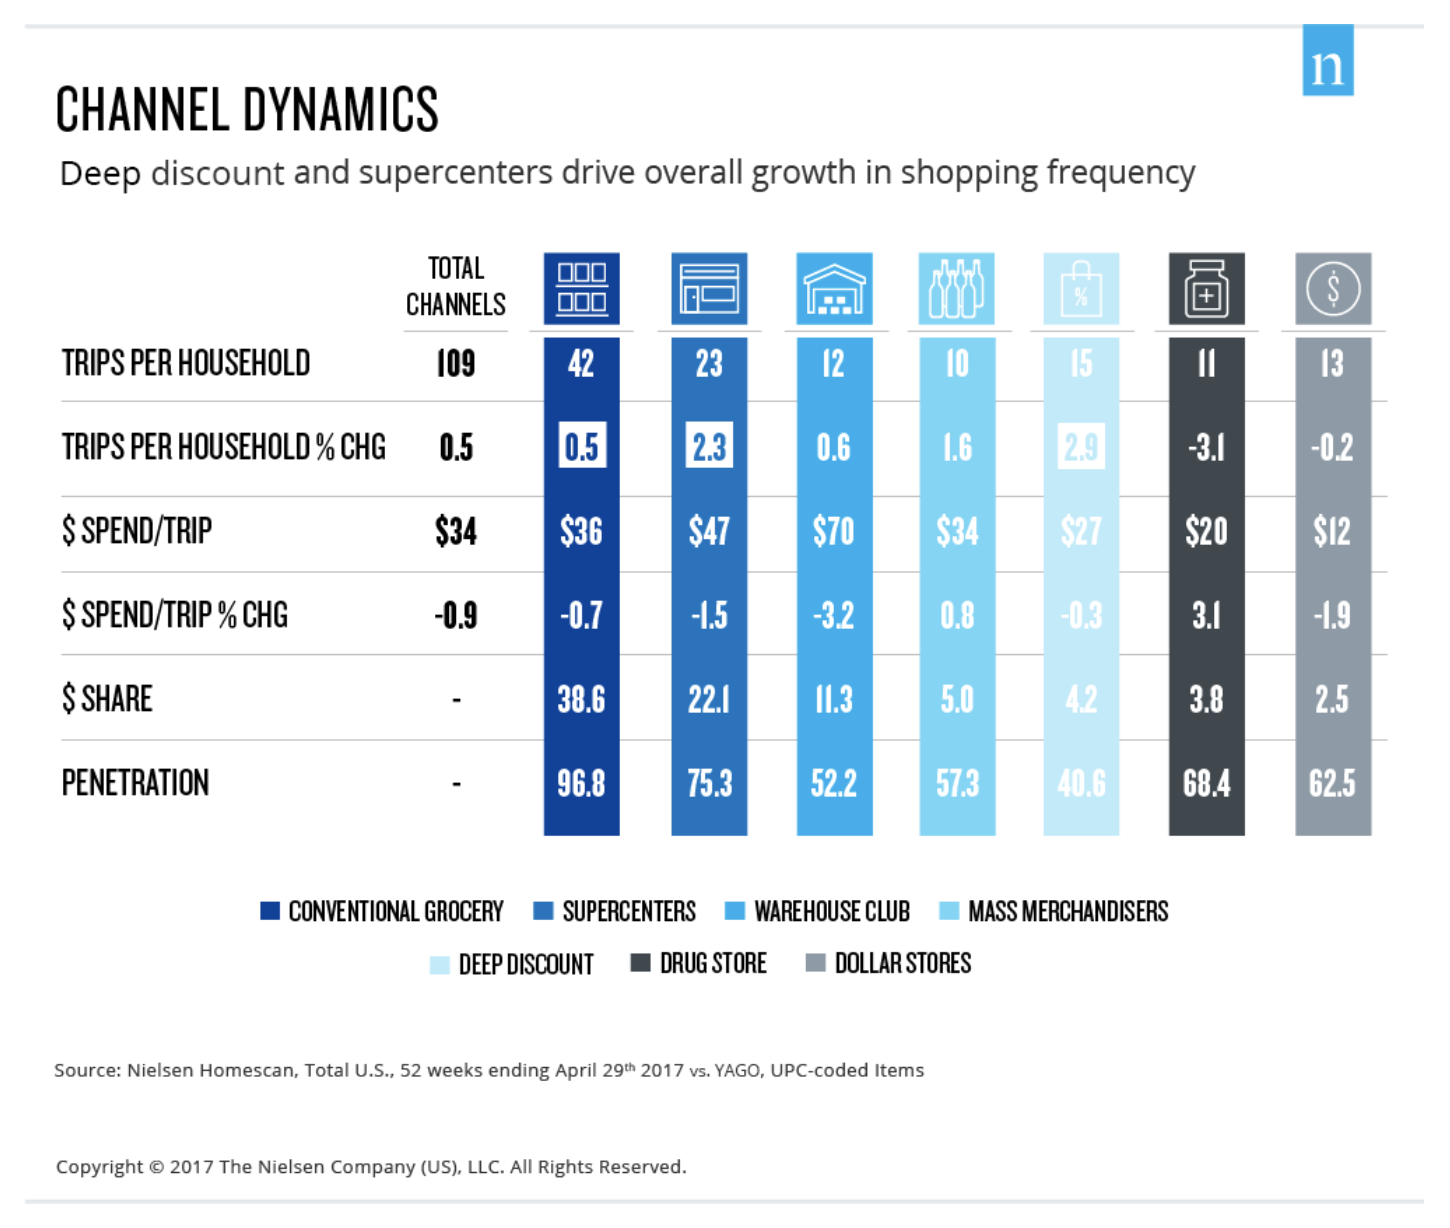 Channel Dynamics, courtesy of The Nielson Company